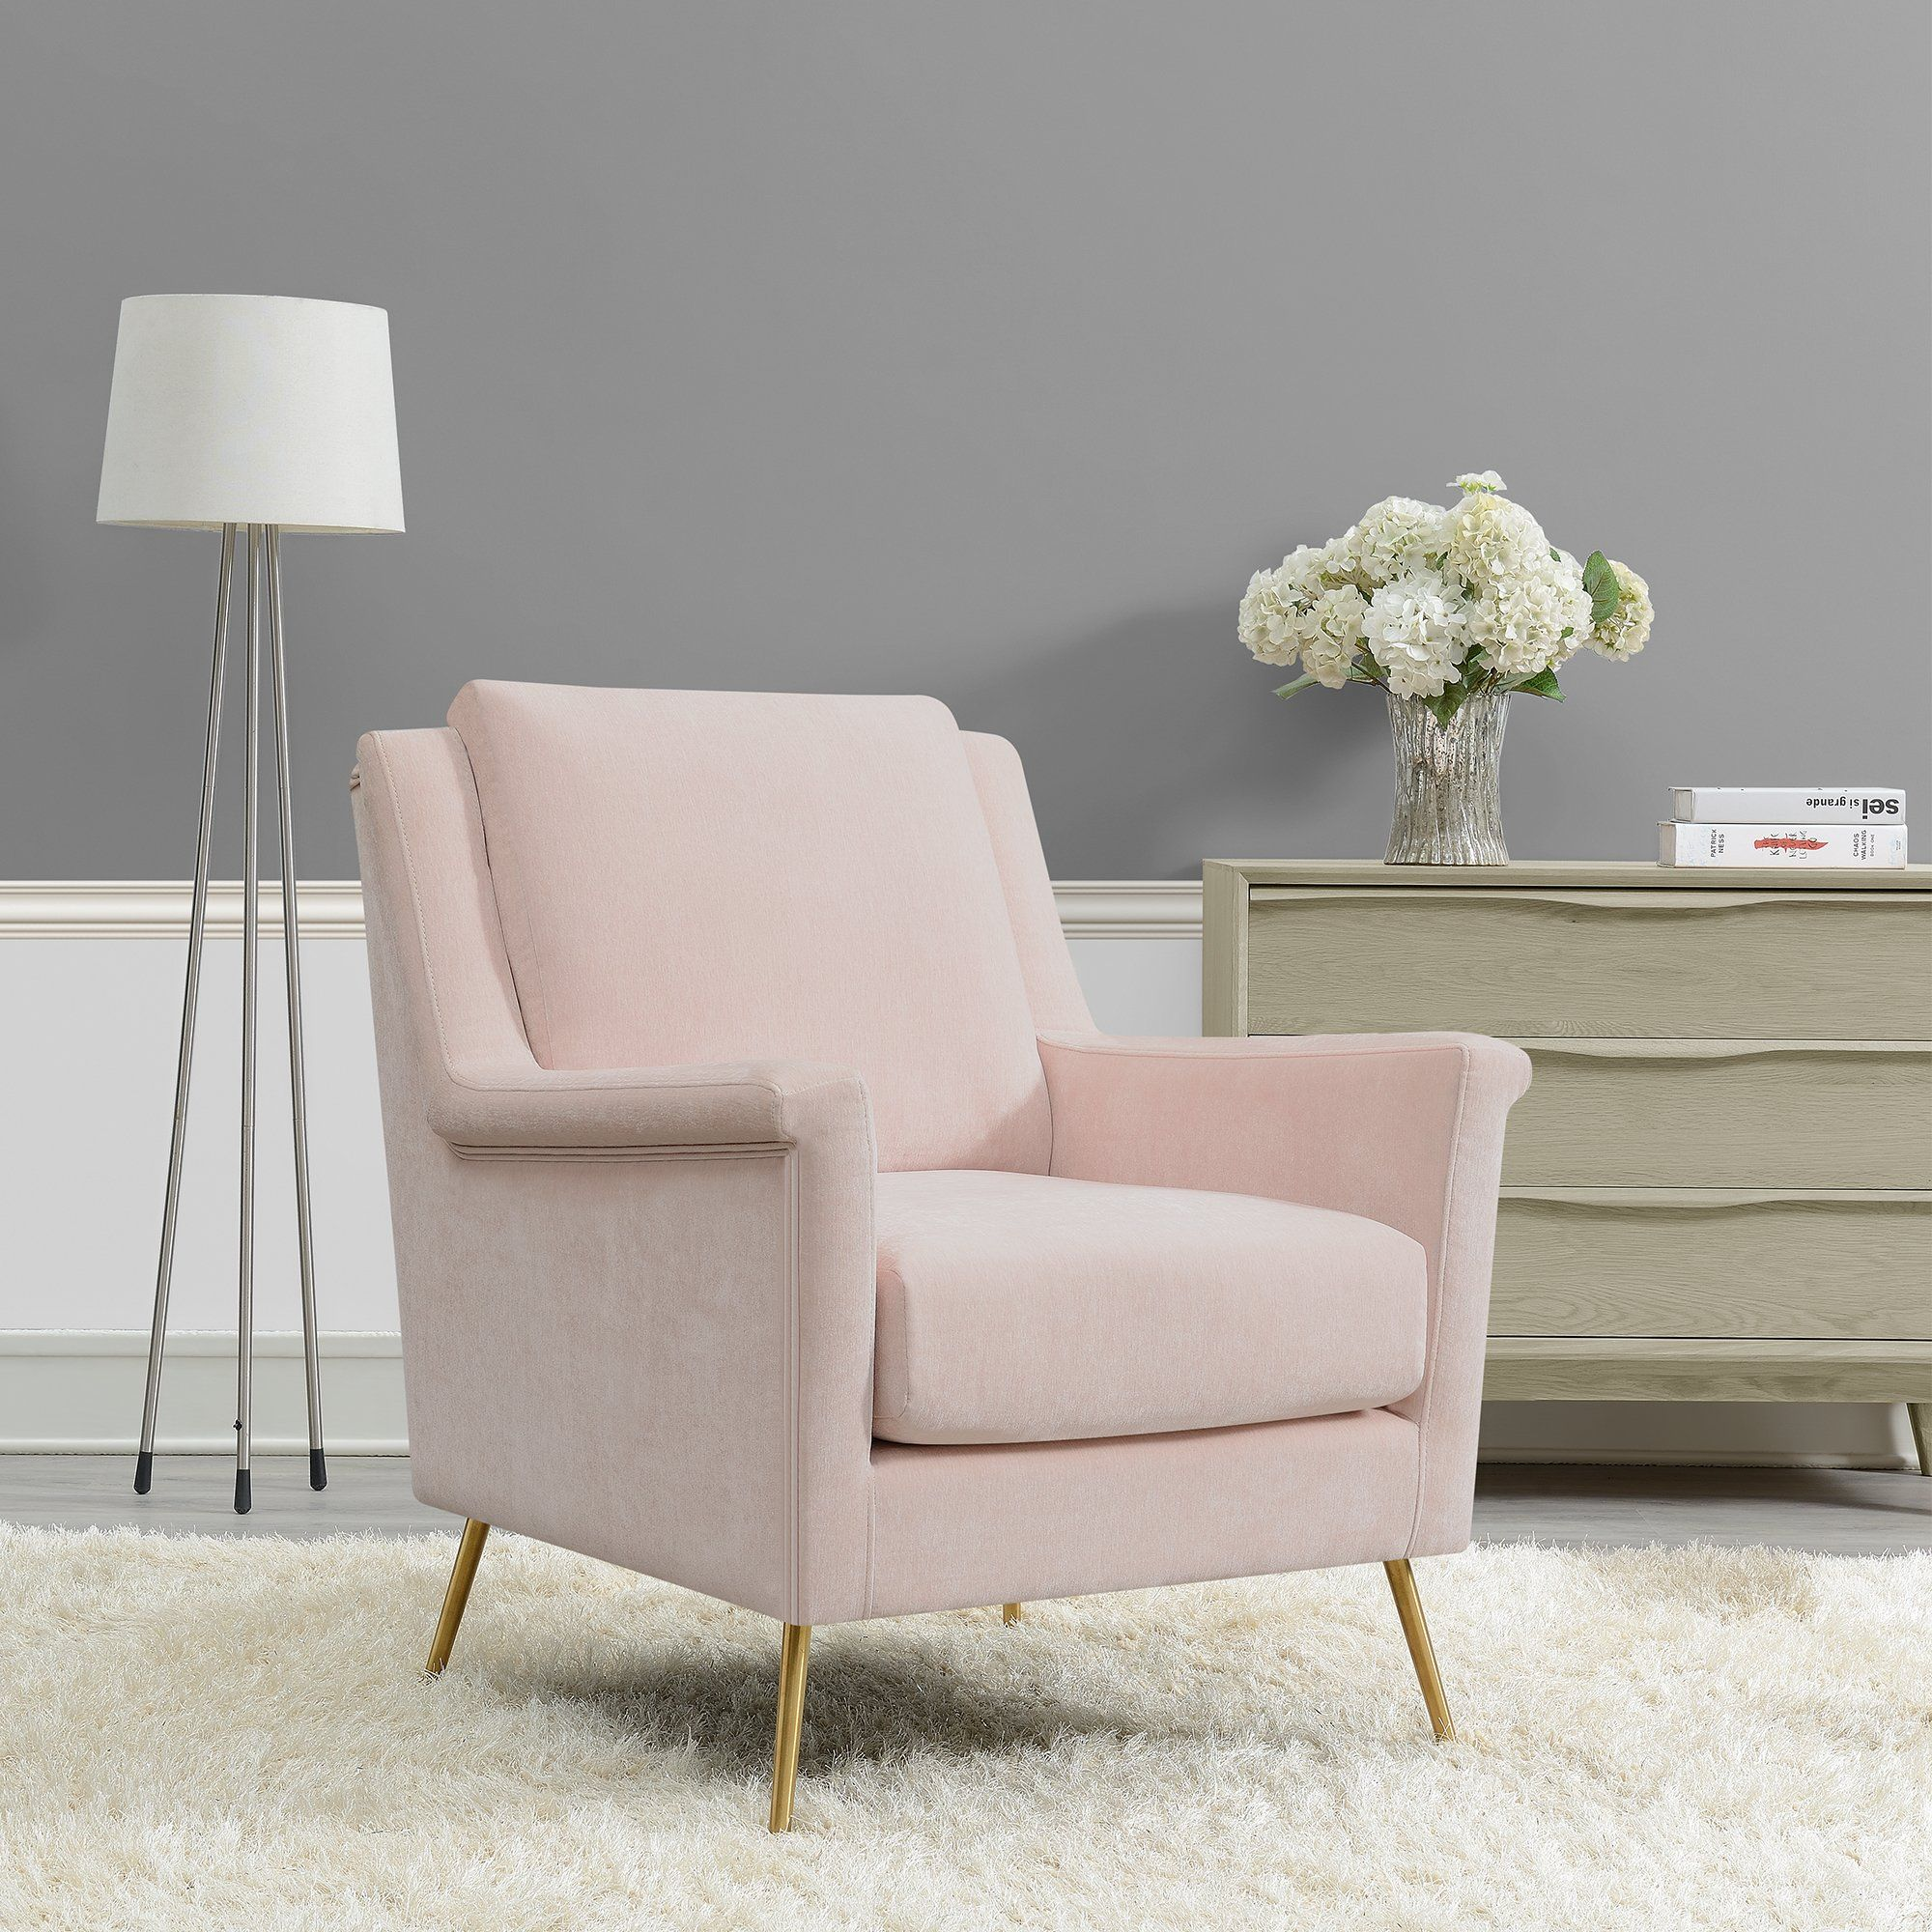 Mid Century Modern Blush Pink Accent Chair - Cambridge | RC Willey Furniture Store | Accent Chairs For Living Room, Pink Accent Chair, Accent Chair Bedroom